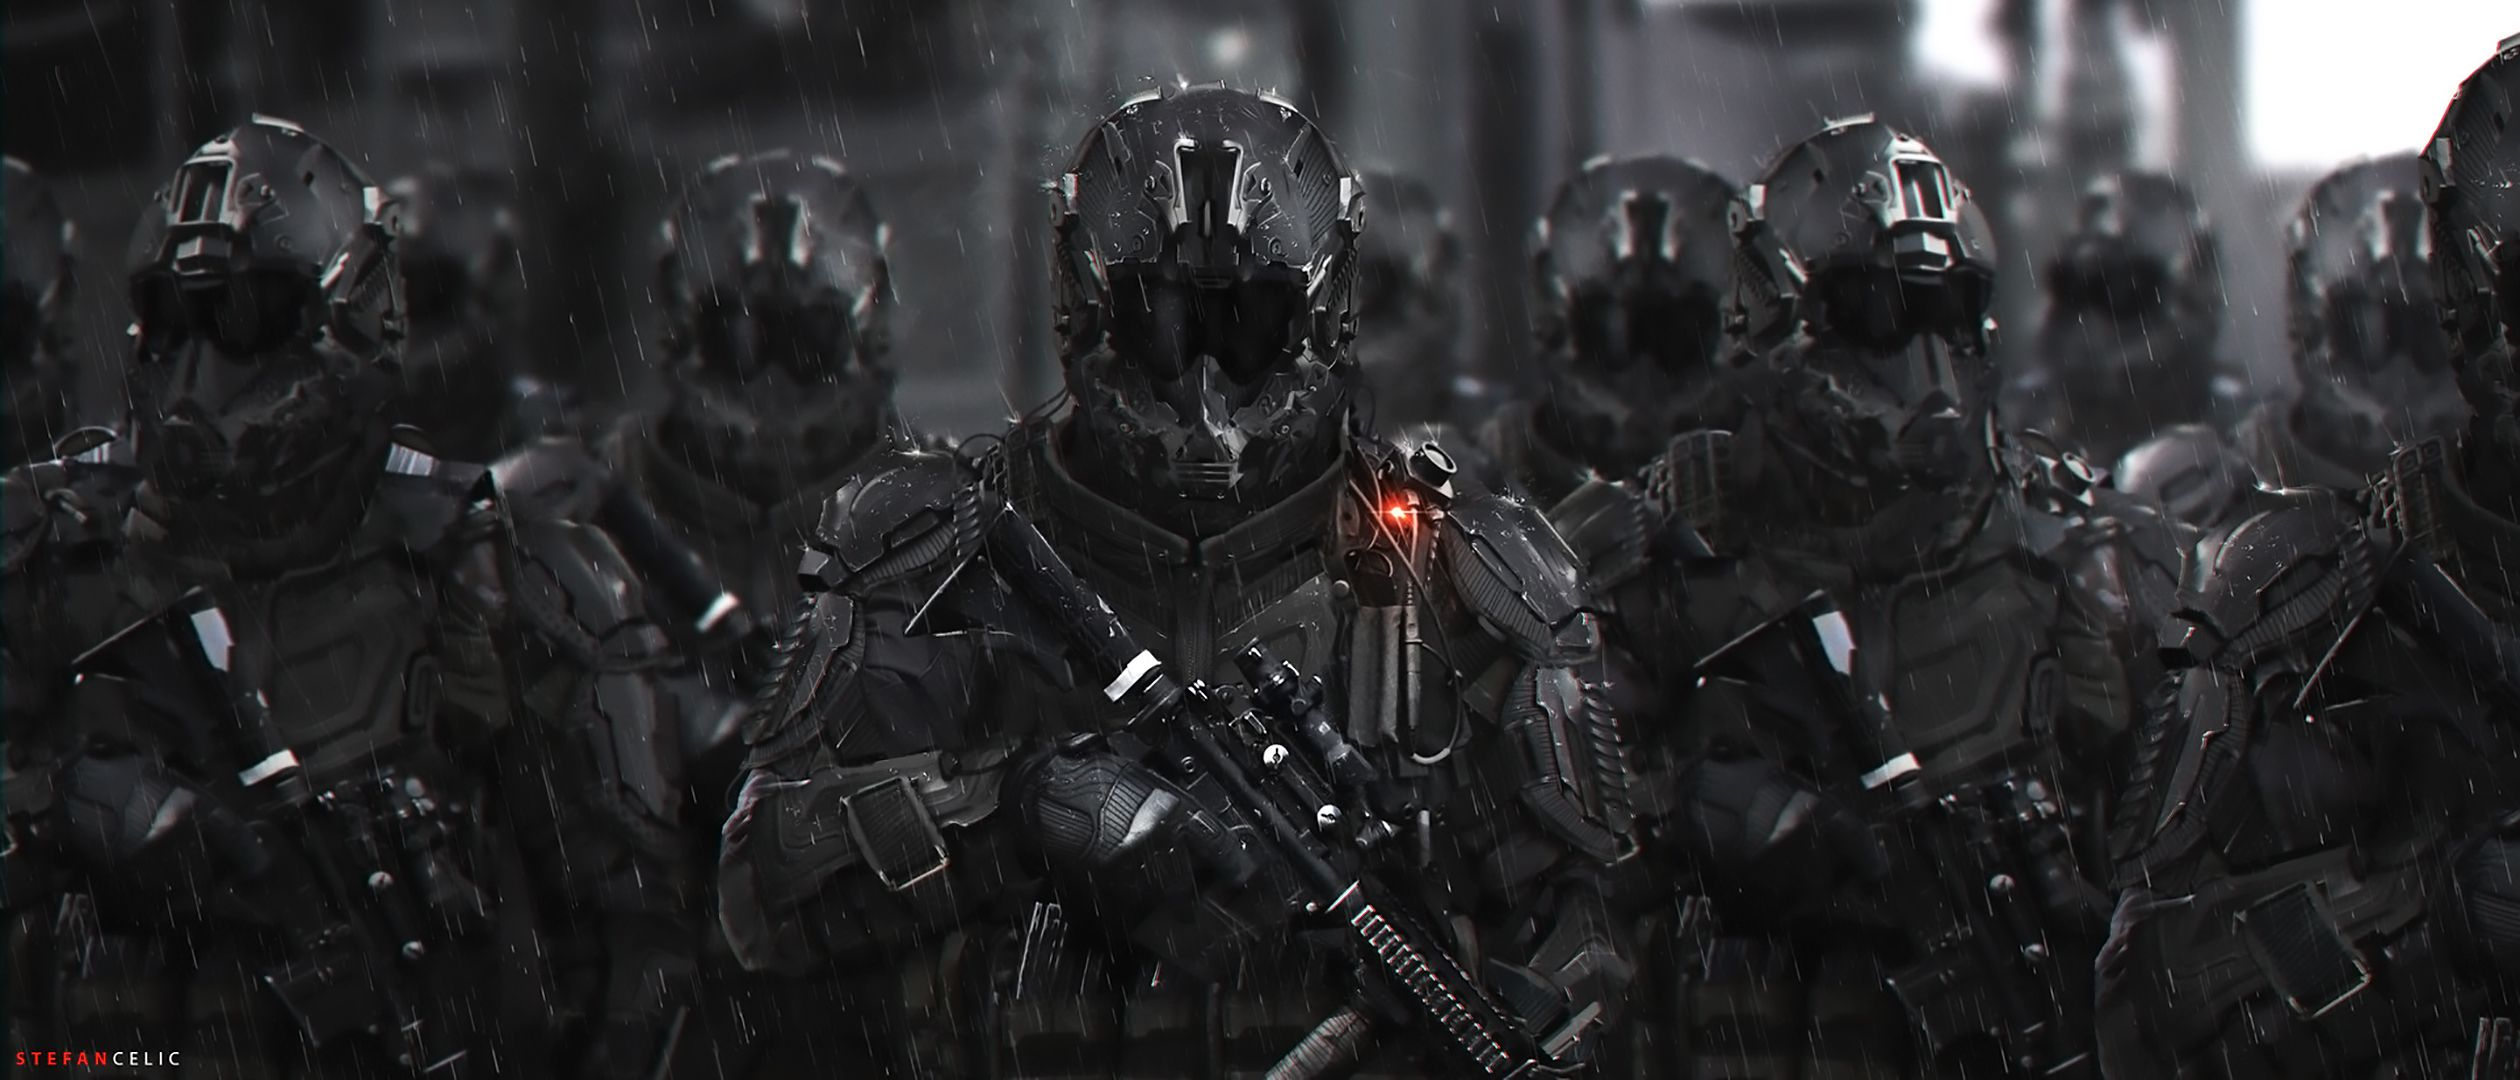 Military Sci Fi Wallpapers - Top Free Military Sci Fi Backgrounds -  WallpaperAccess